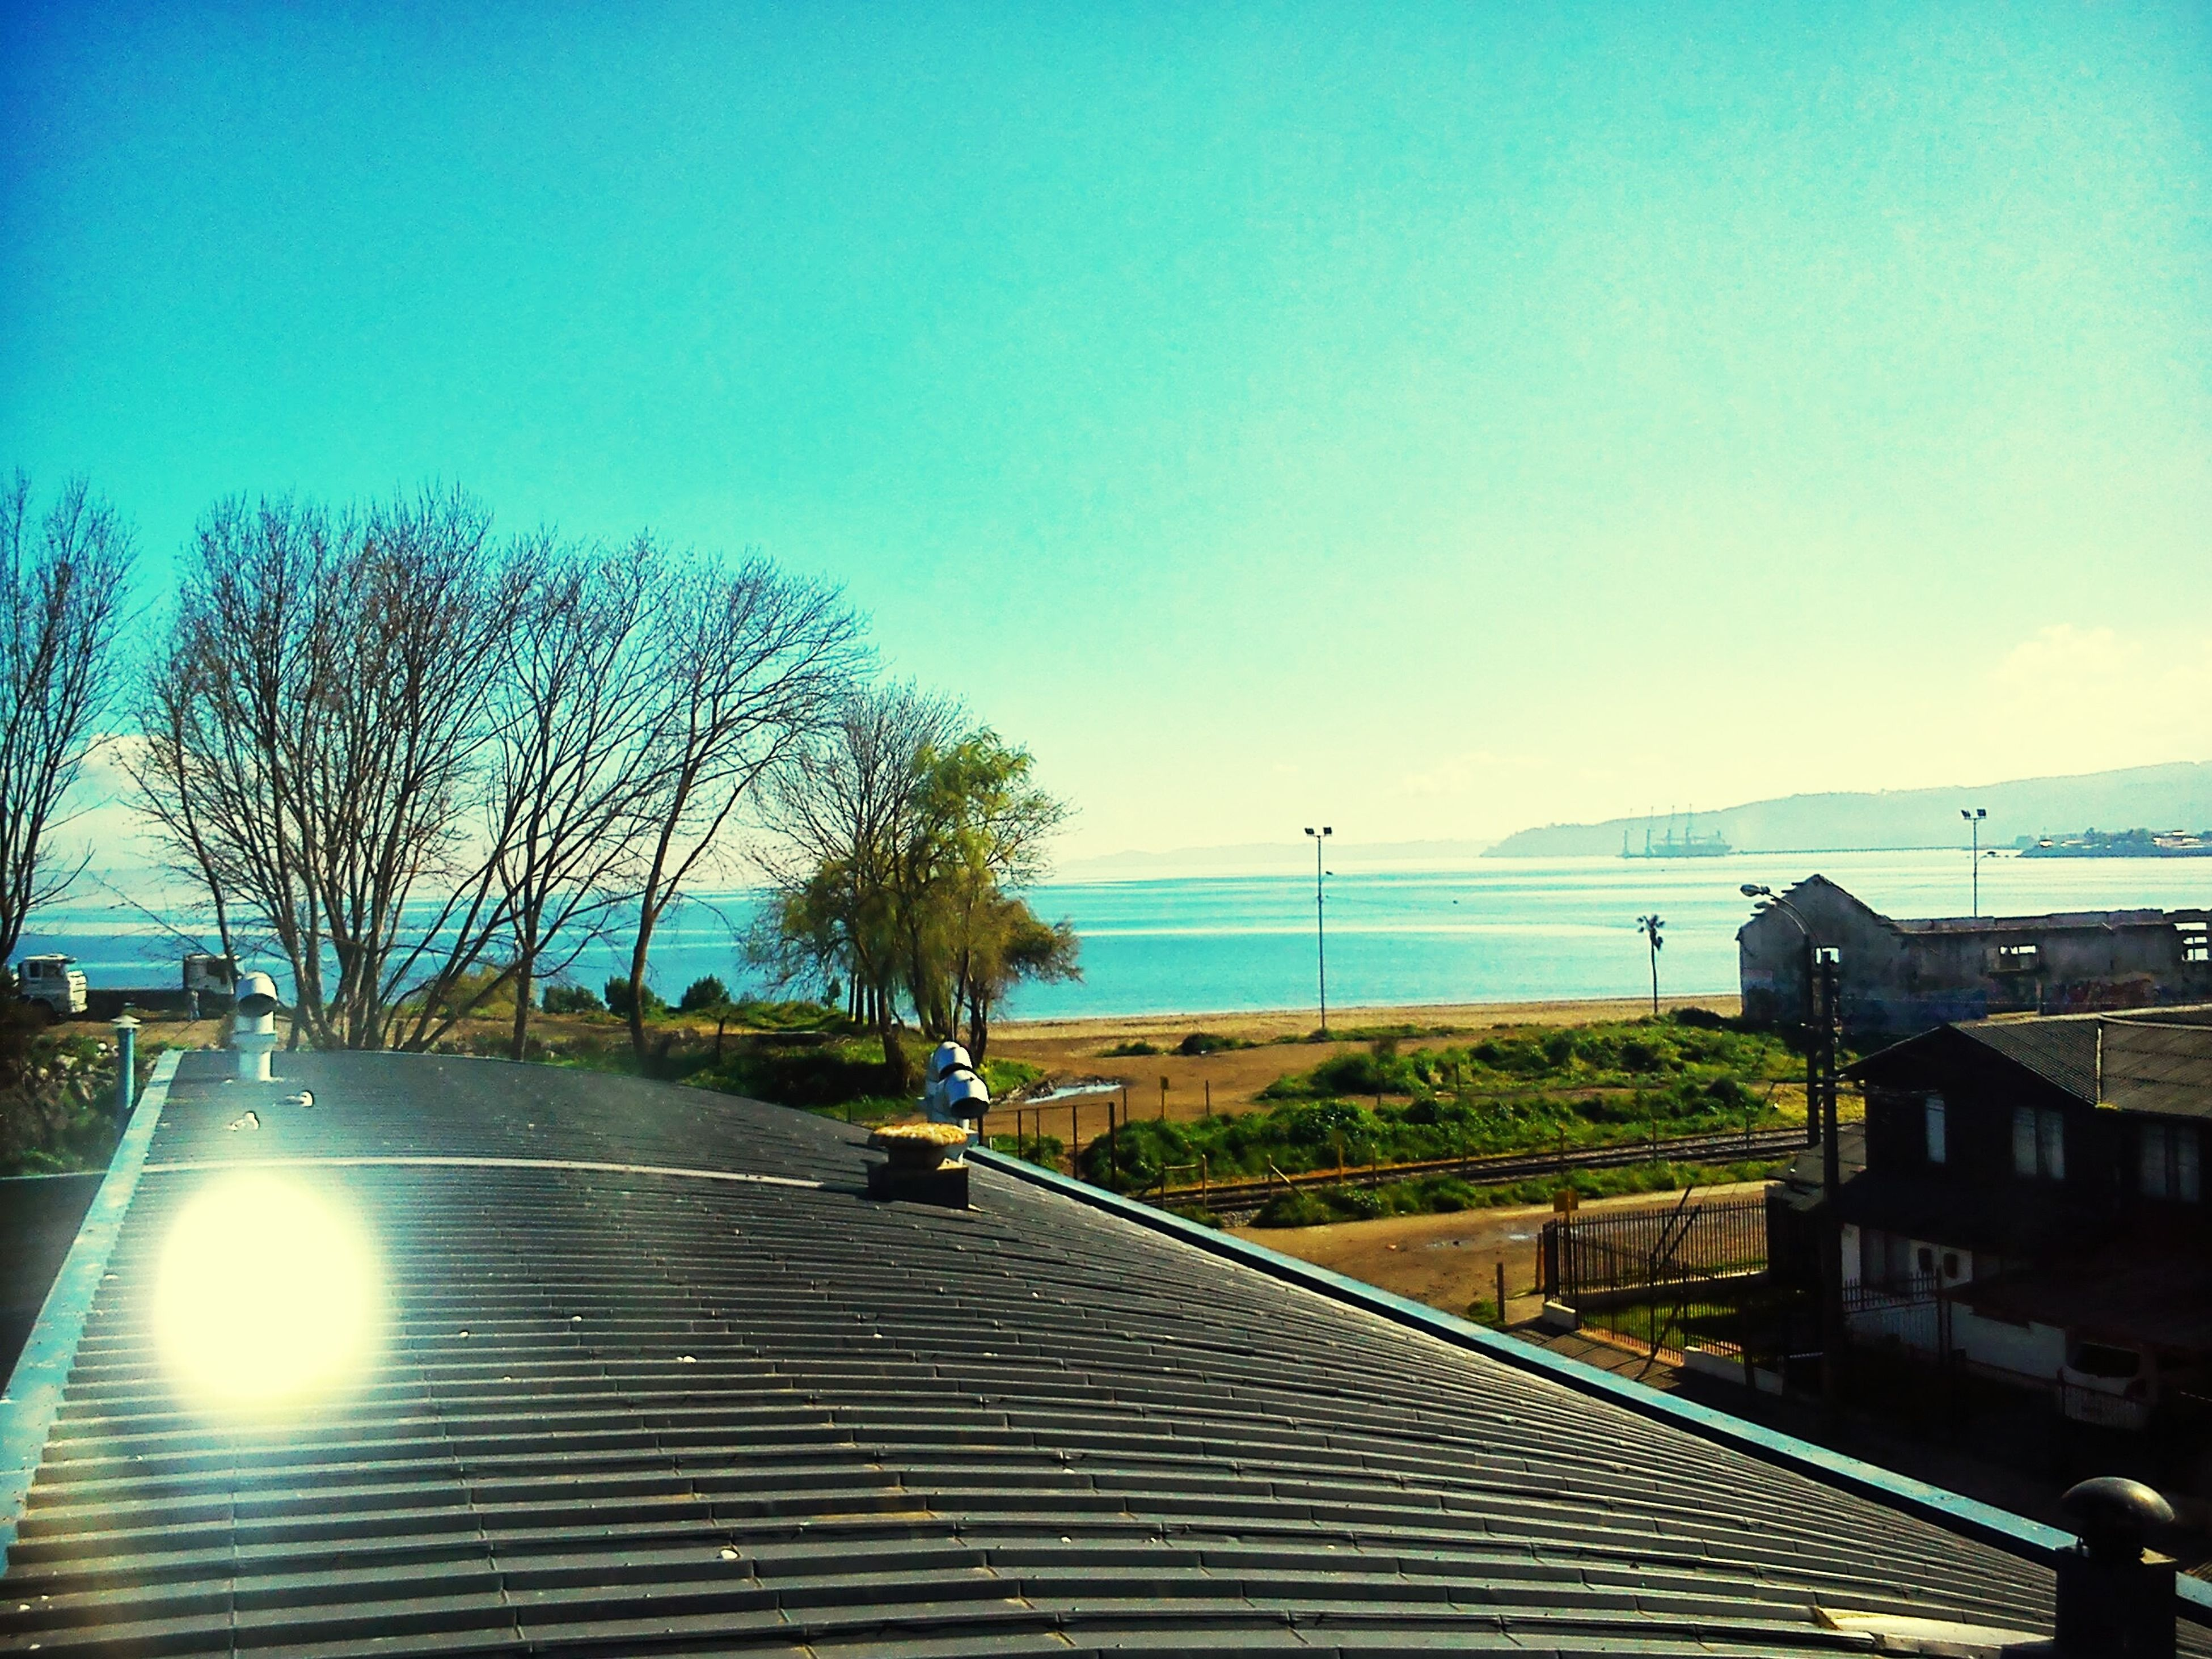 clear sky, tree, water, sea, horizon over water, blue, copy space, sunlight, tranquility, tranquil scene, nature, sky, scenics, railing, transportation, road, beauty in nature, sun, the way forward, built structure